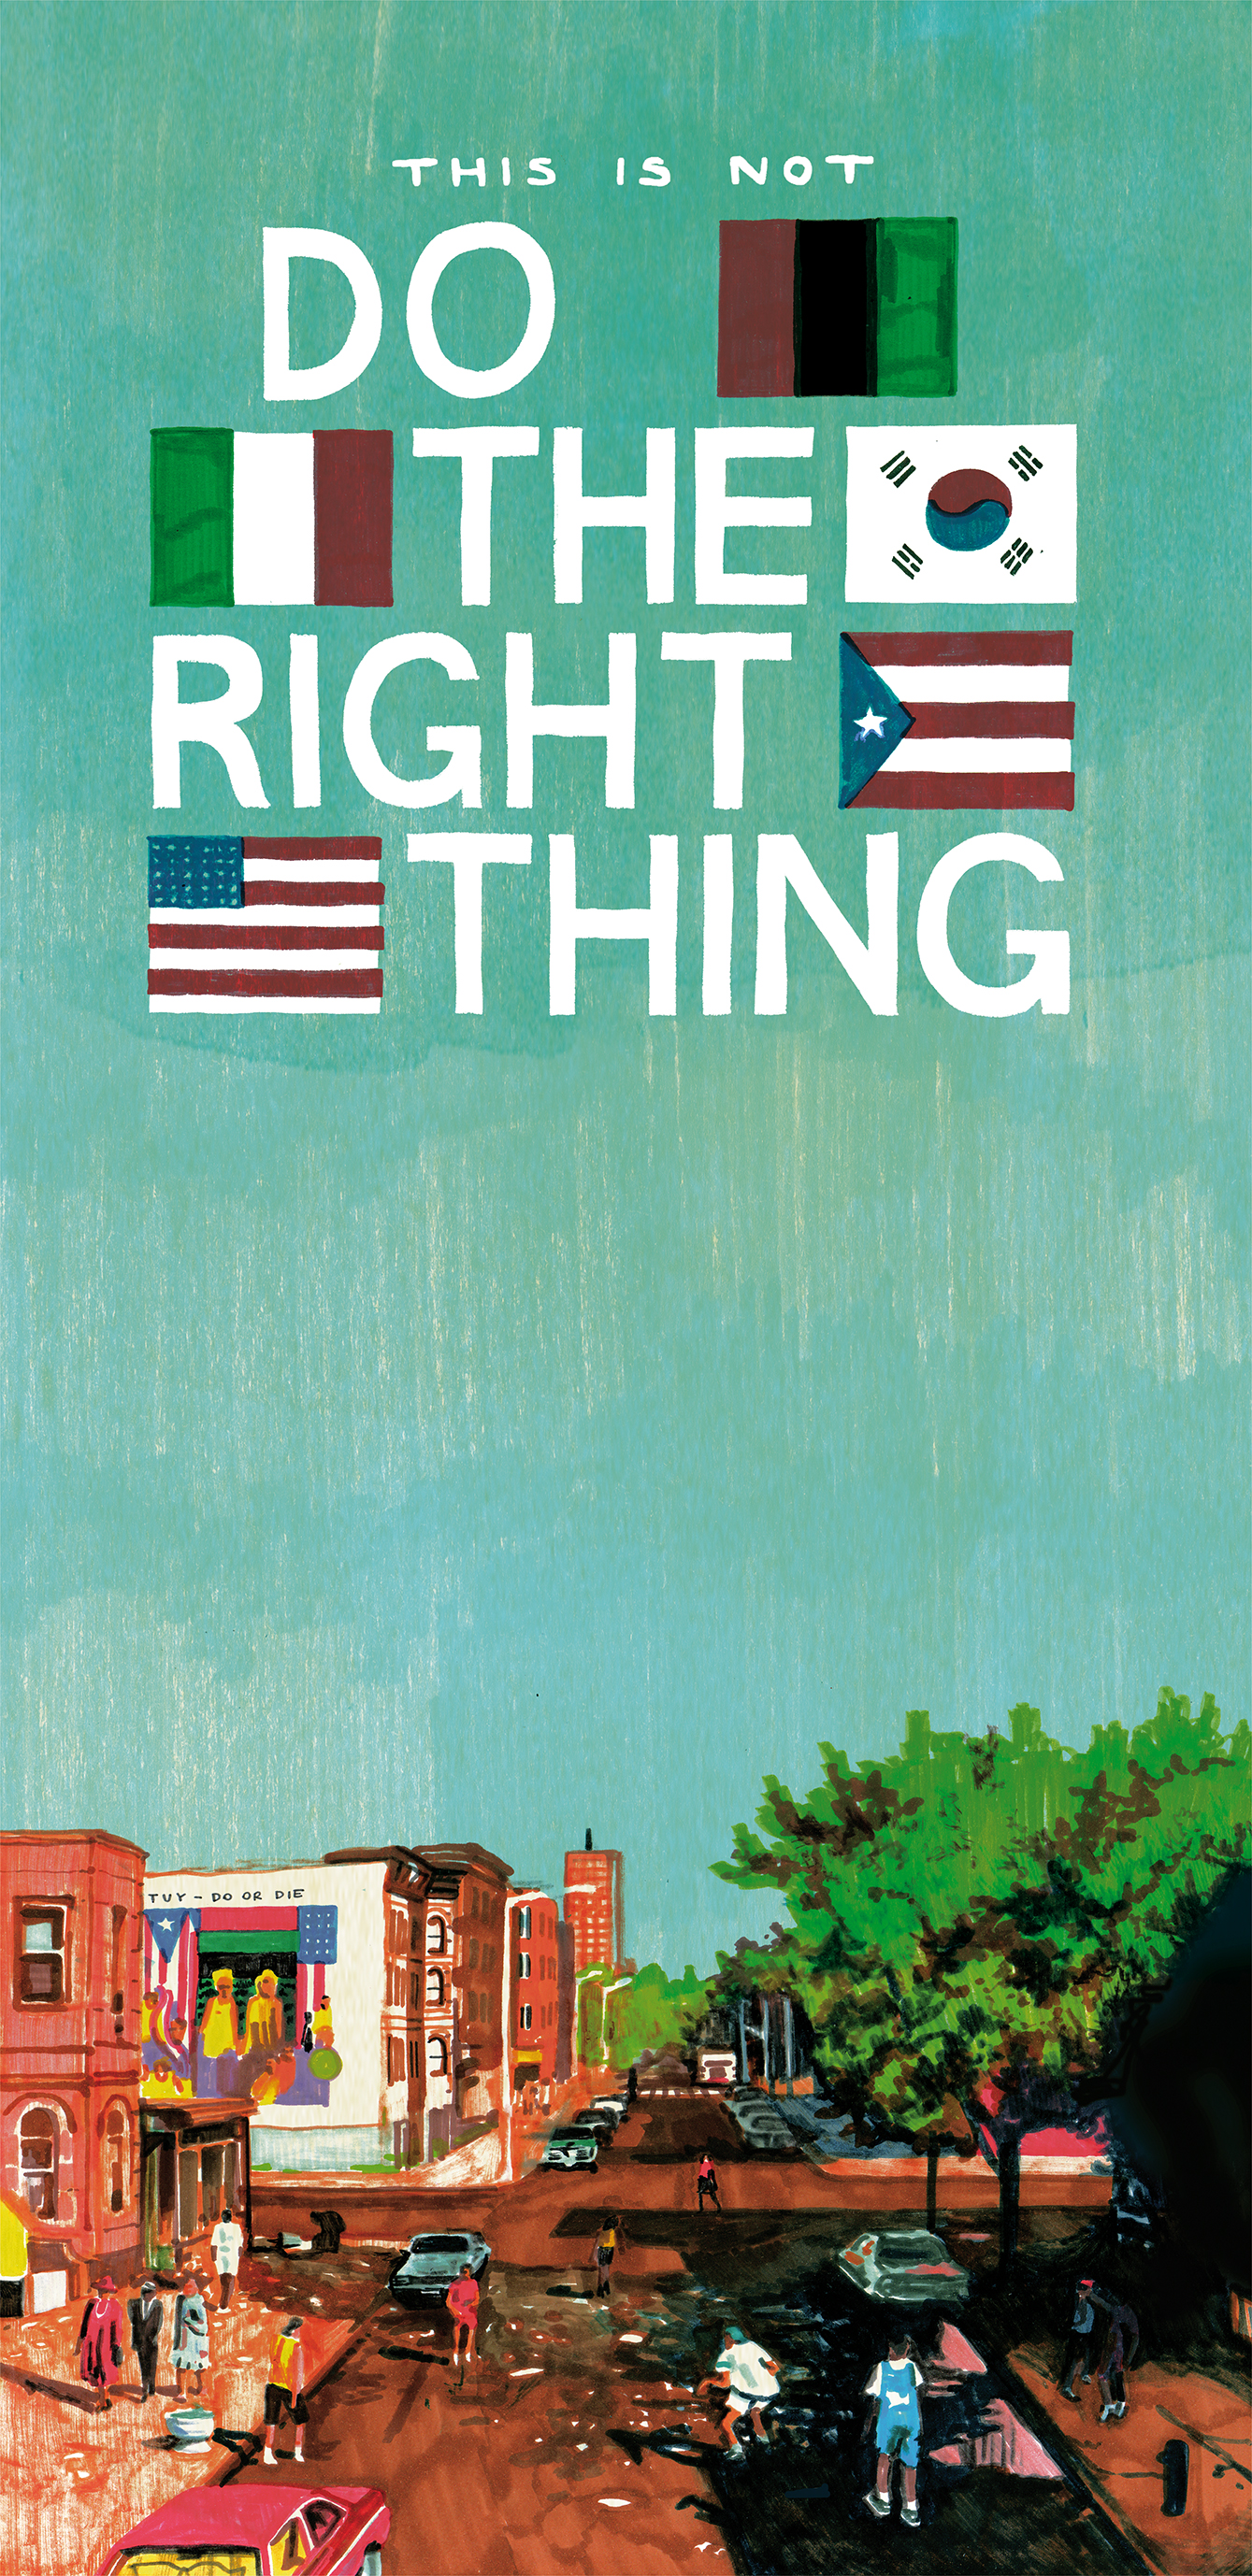 Locandina per VHS 034 – (THIS IS NOT) DO THE RIGHT THING – SPIKE LEE di This Is Not A Love Song (Courtesy: Eliana Albertini)